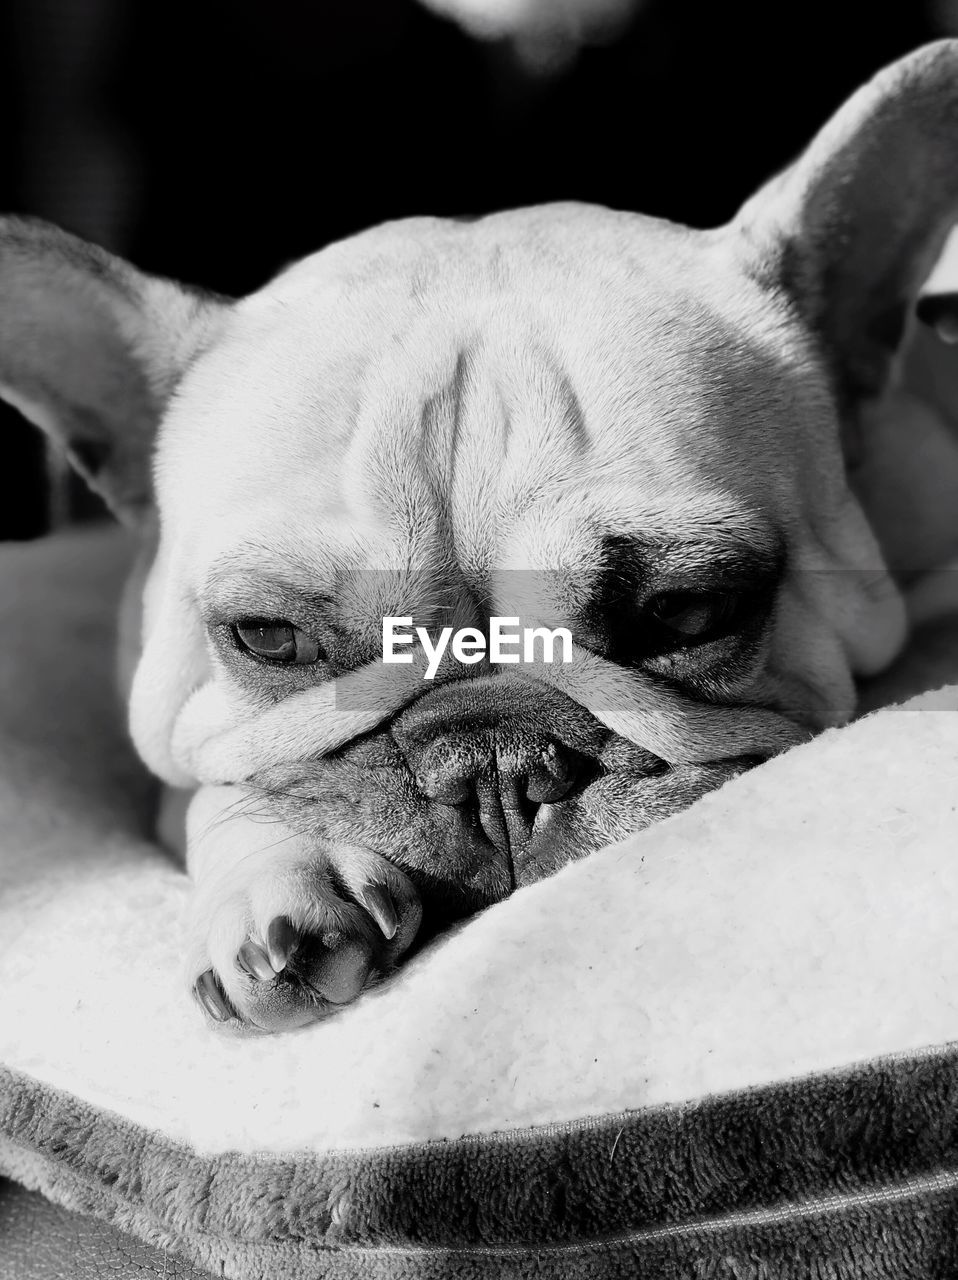 dog, canine, one animal, animal themes, animal, pets, domestic animals, domestic, mammal, vertebrate, relaxation, close-up, no people, animal body part, indoors, pug, animal head, resting, lying down, portrait, small